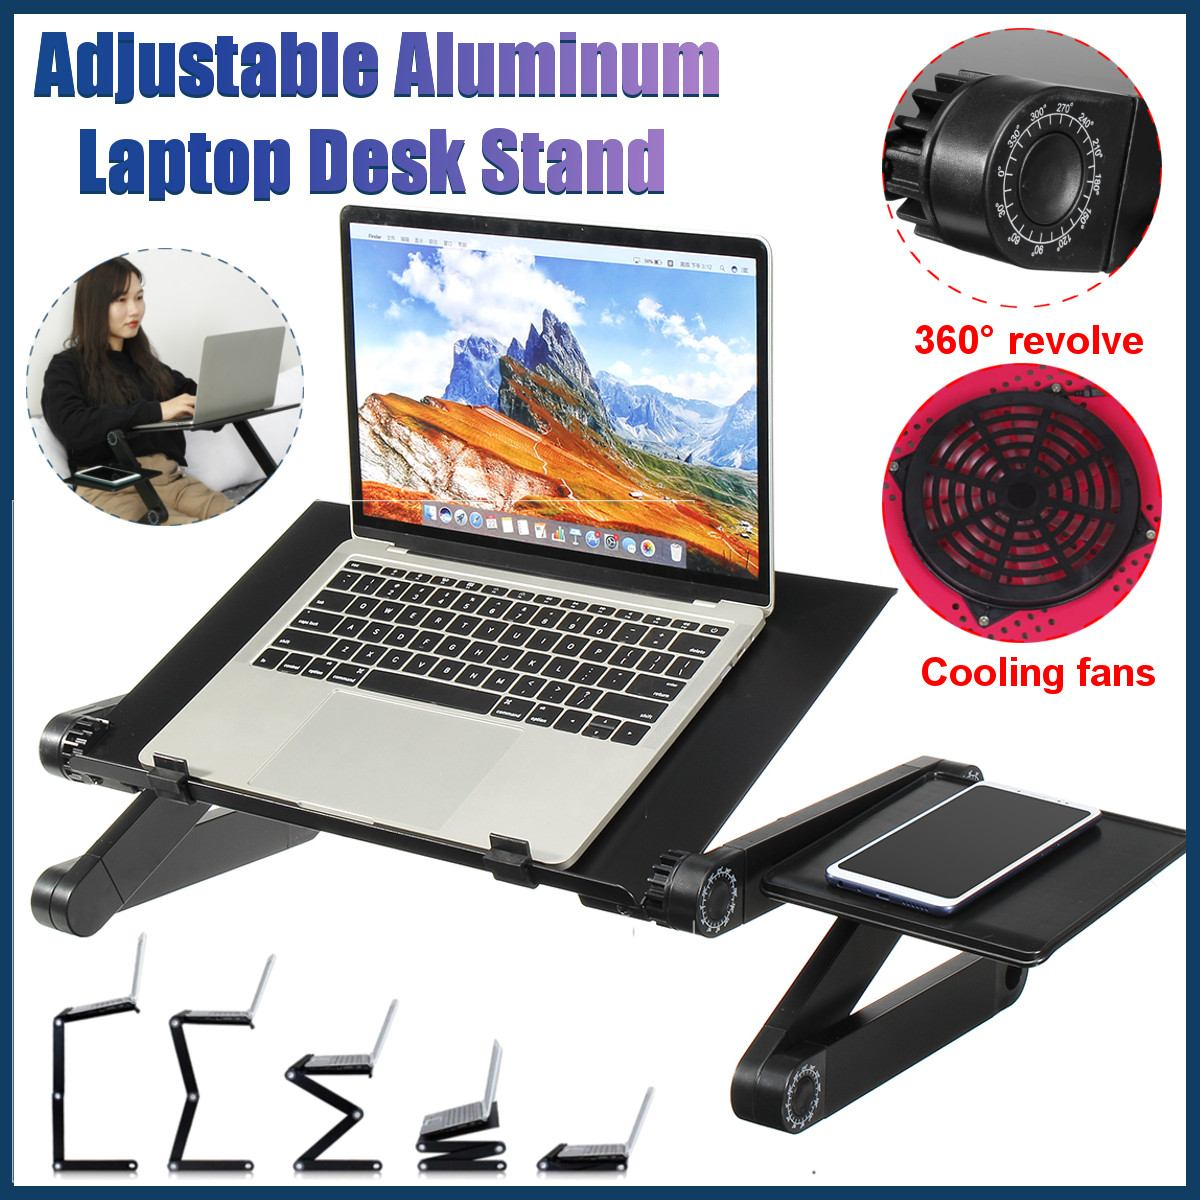 Portable Adjustable Aluminum Laptop Desk Stand Table Vented TV Bed Lap Stand Up Working Office PC Riser Bed Sofa Couch